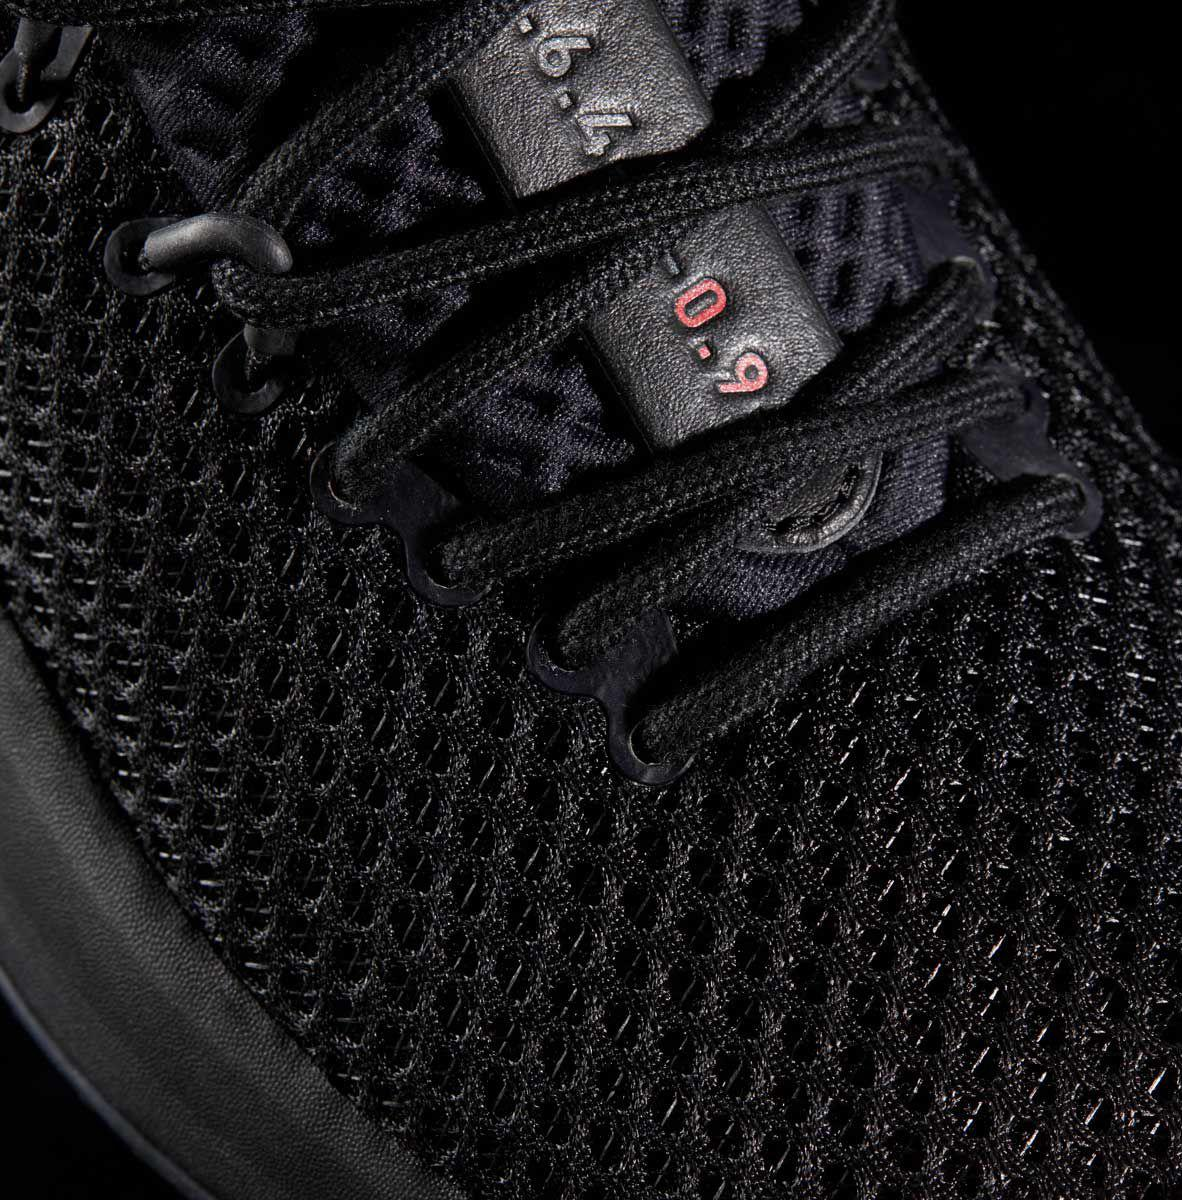 new product 4b99e f0202 Adidas - Black Dame 4 Basketball Shoes for Men - Lyst